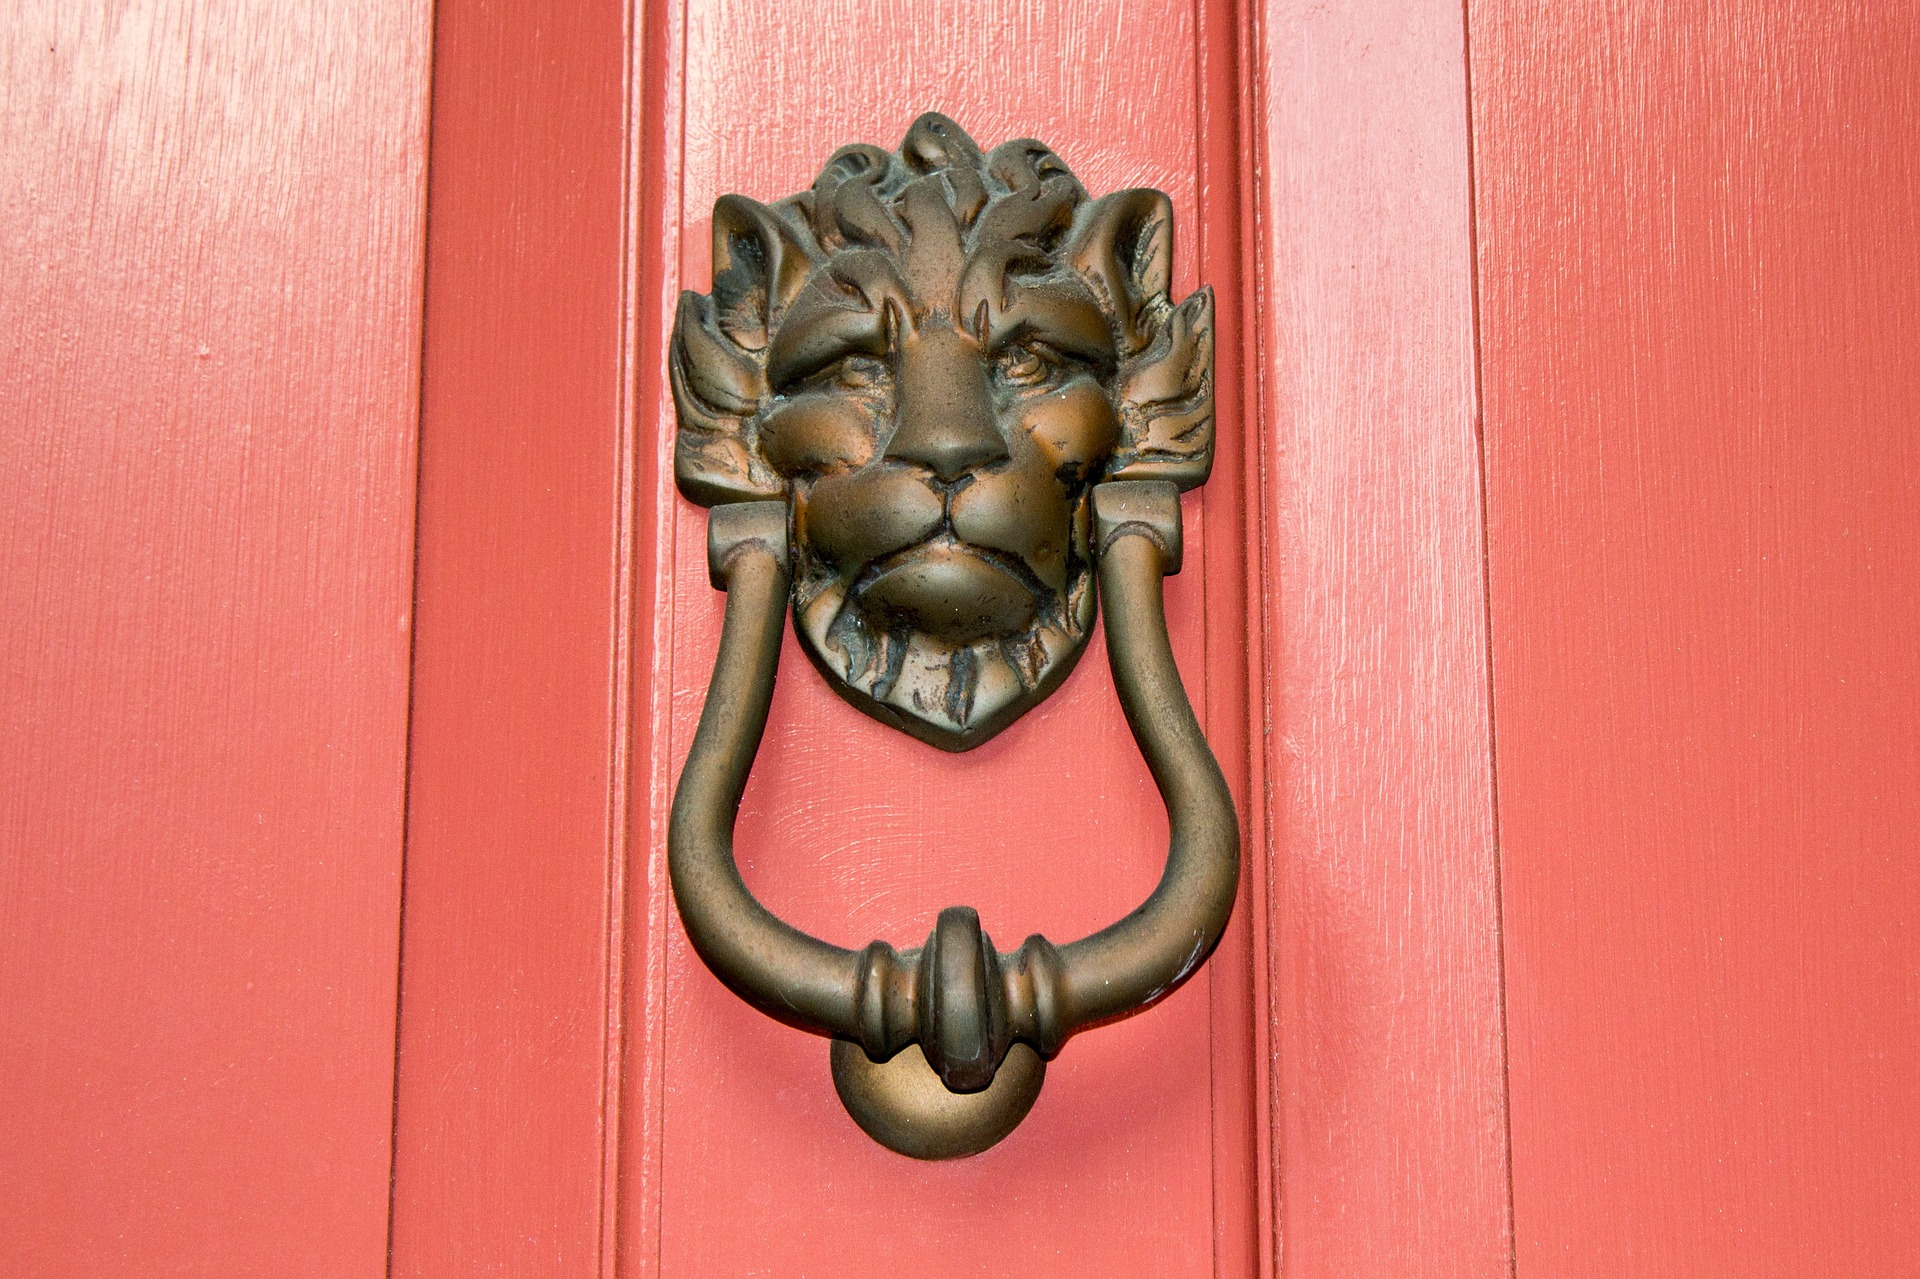 Add a door knocker to the front door